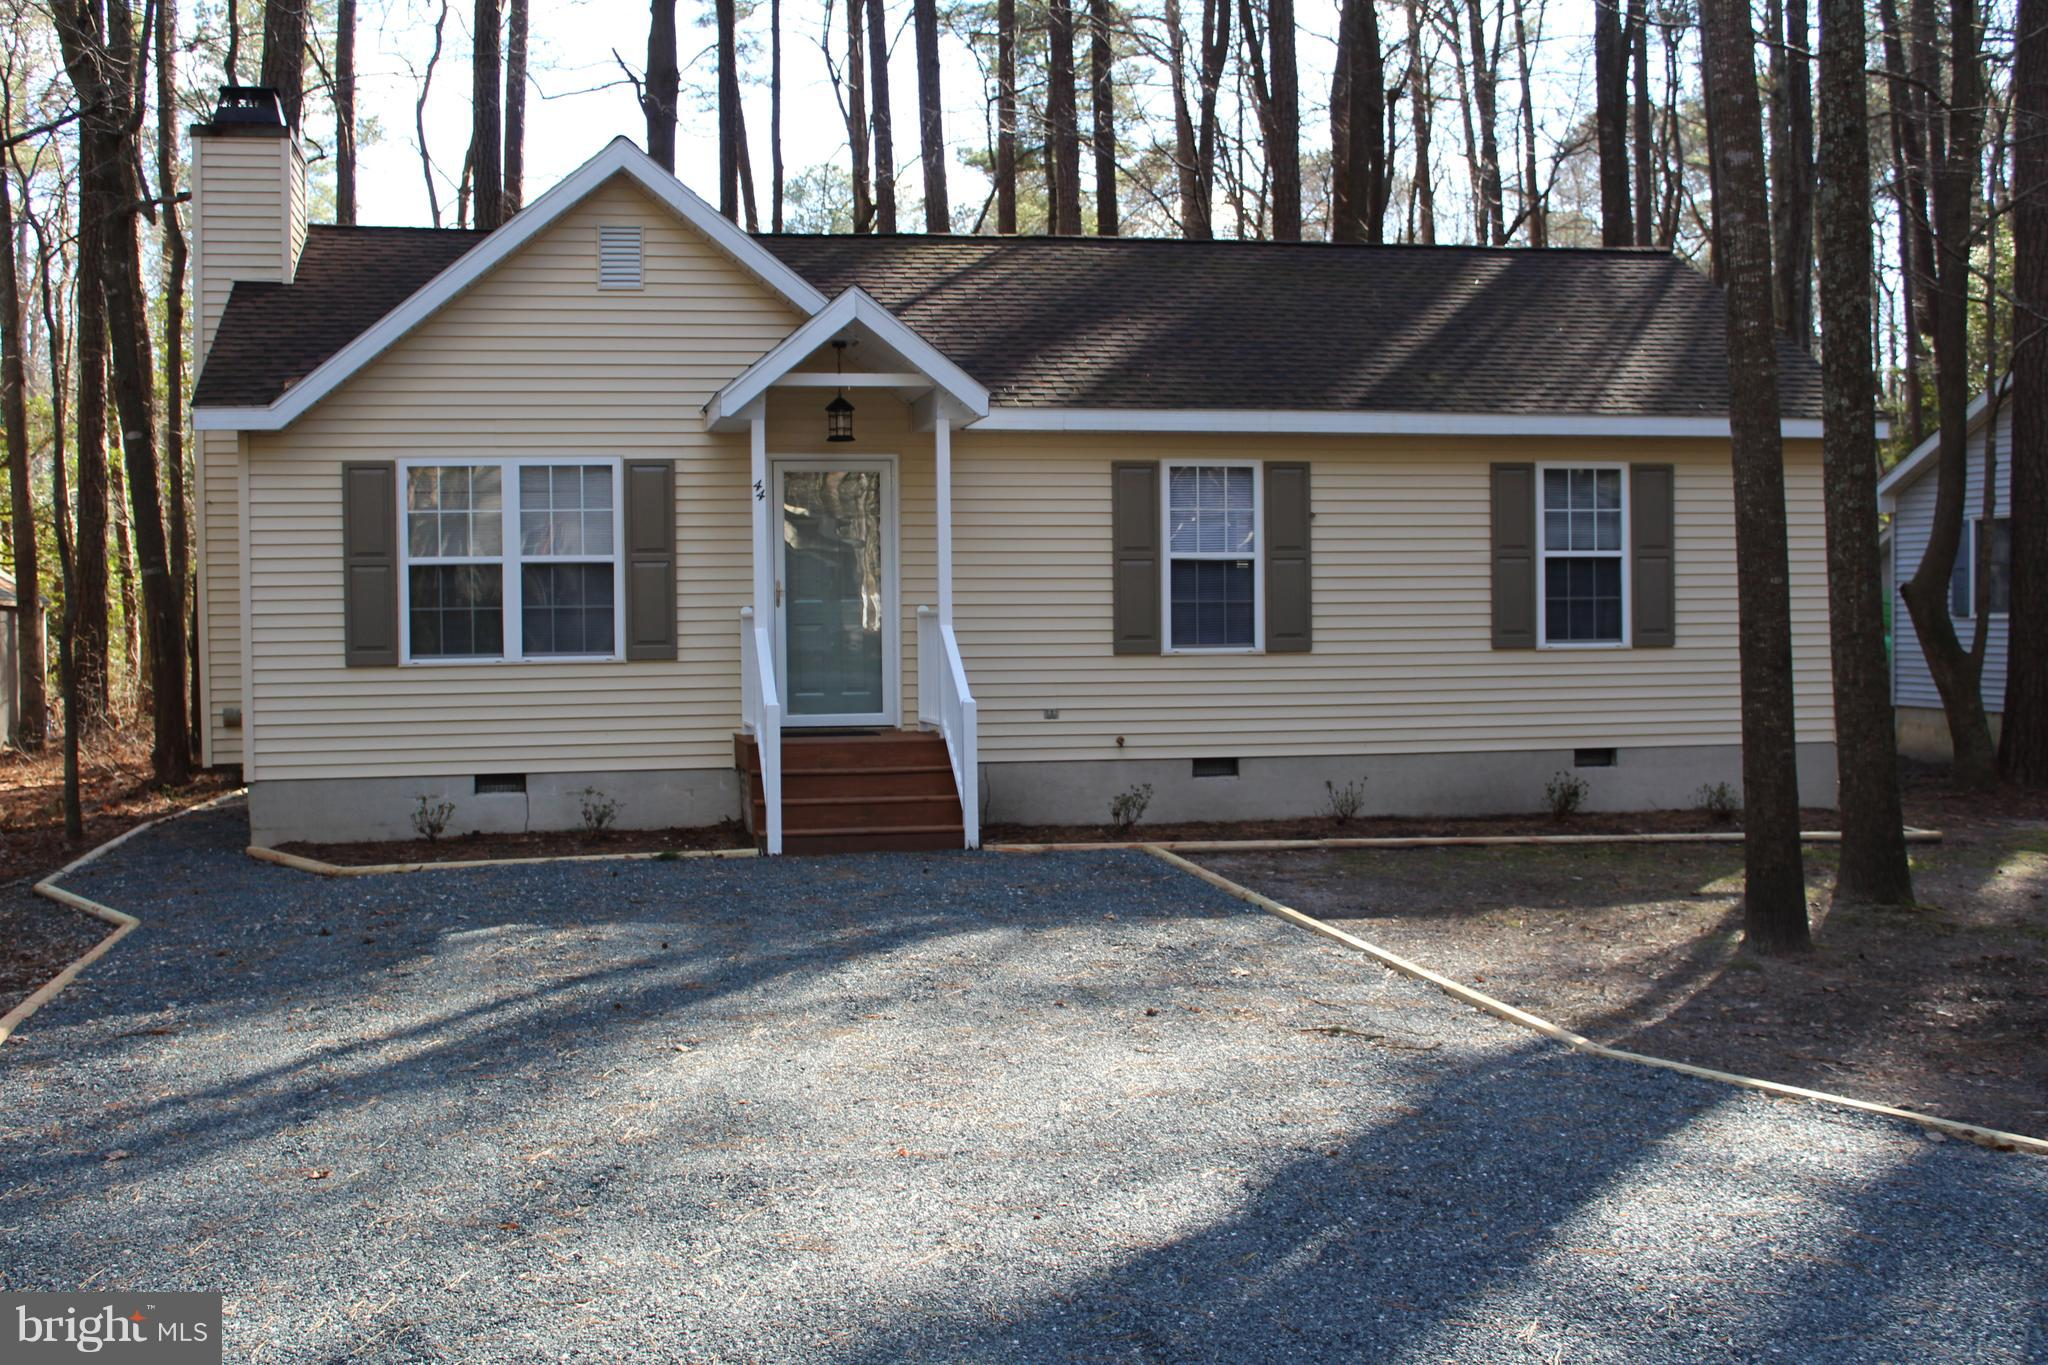 44 CRESTHAVEN DRIVE, OCEAN PINES, MD 21811